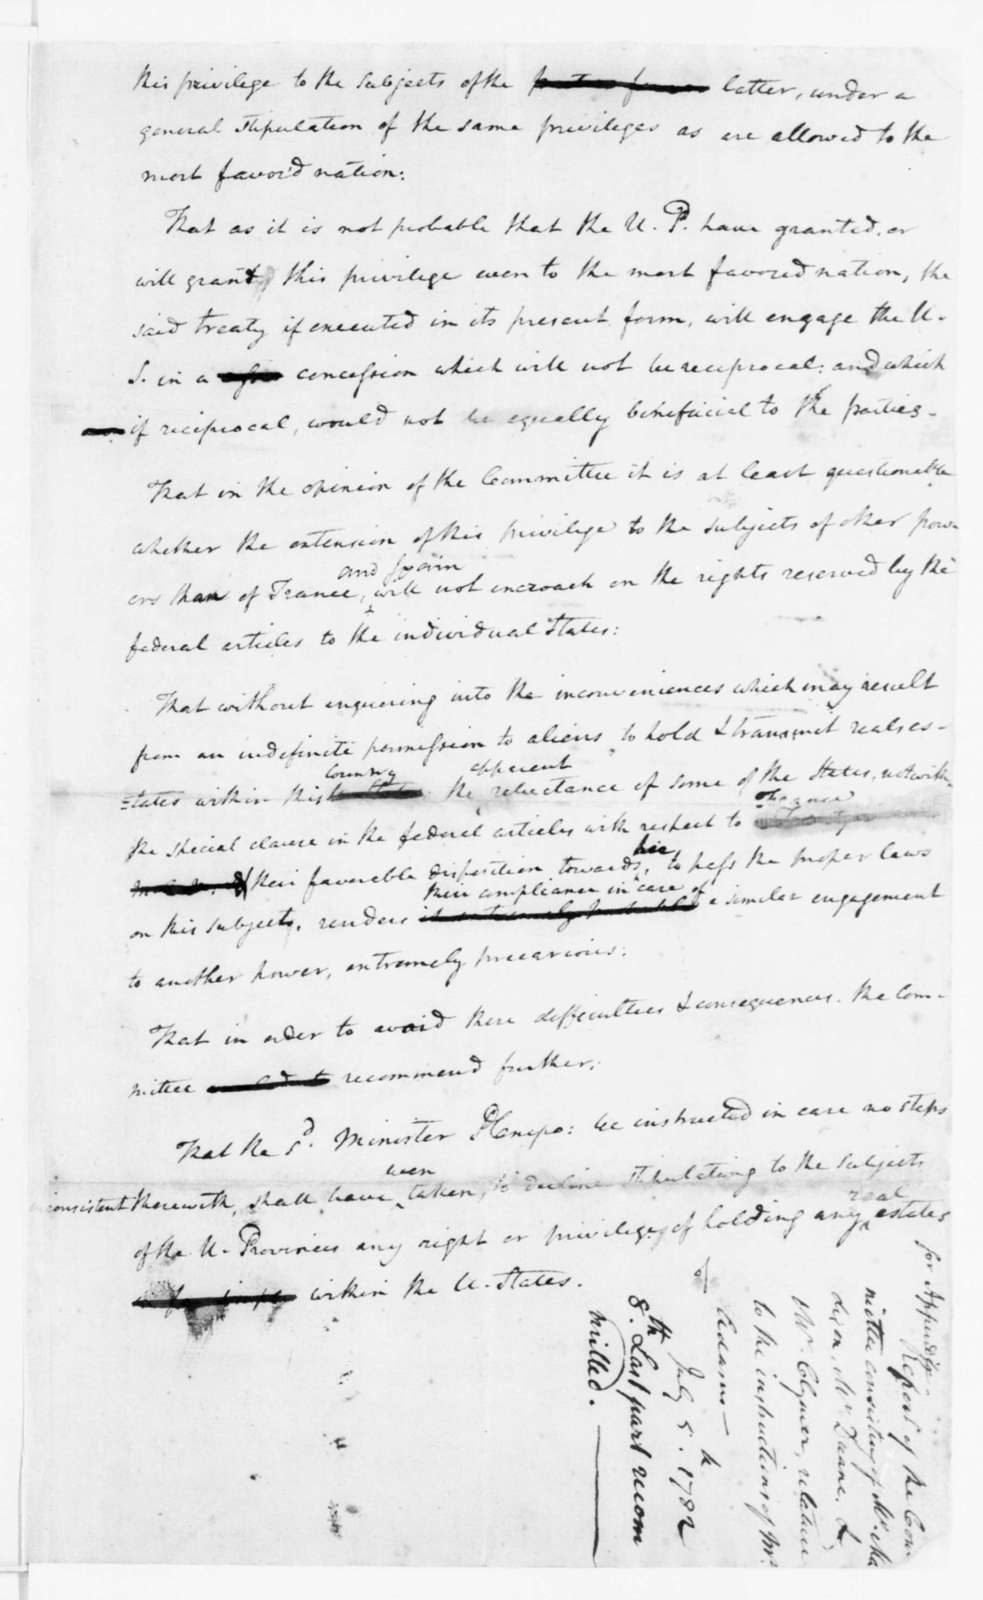 Continental Congress Committee, July 5, 1782. Report on Revisions to Instructions for John Adams.